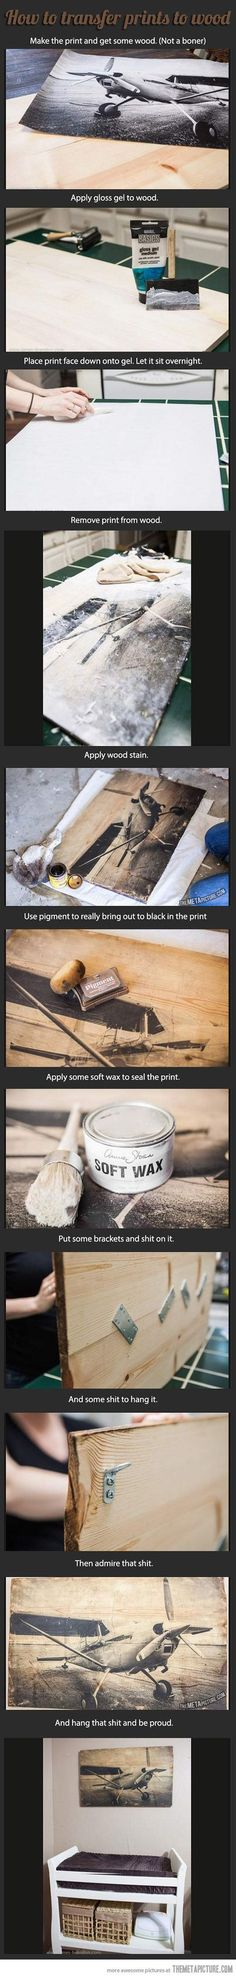 How to transfer prints to wood…